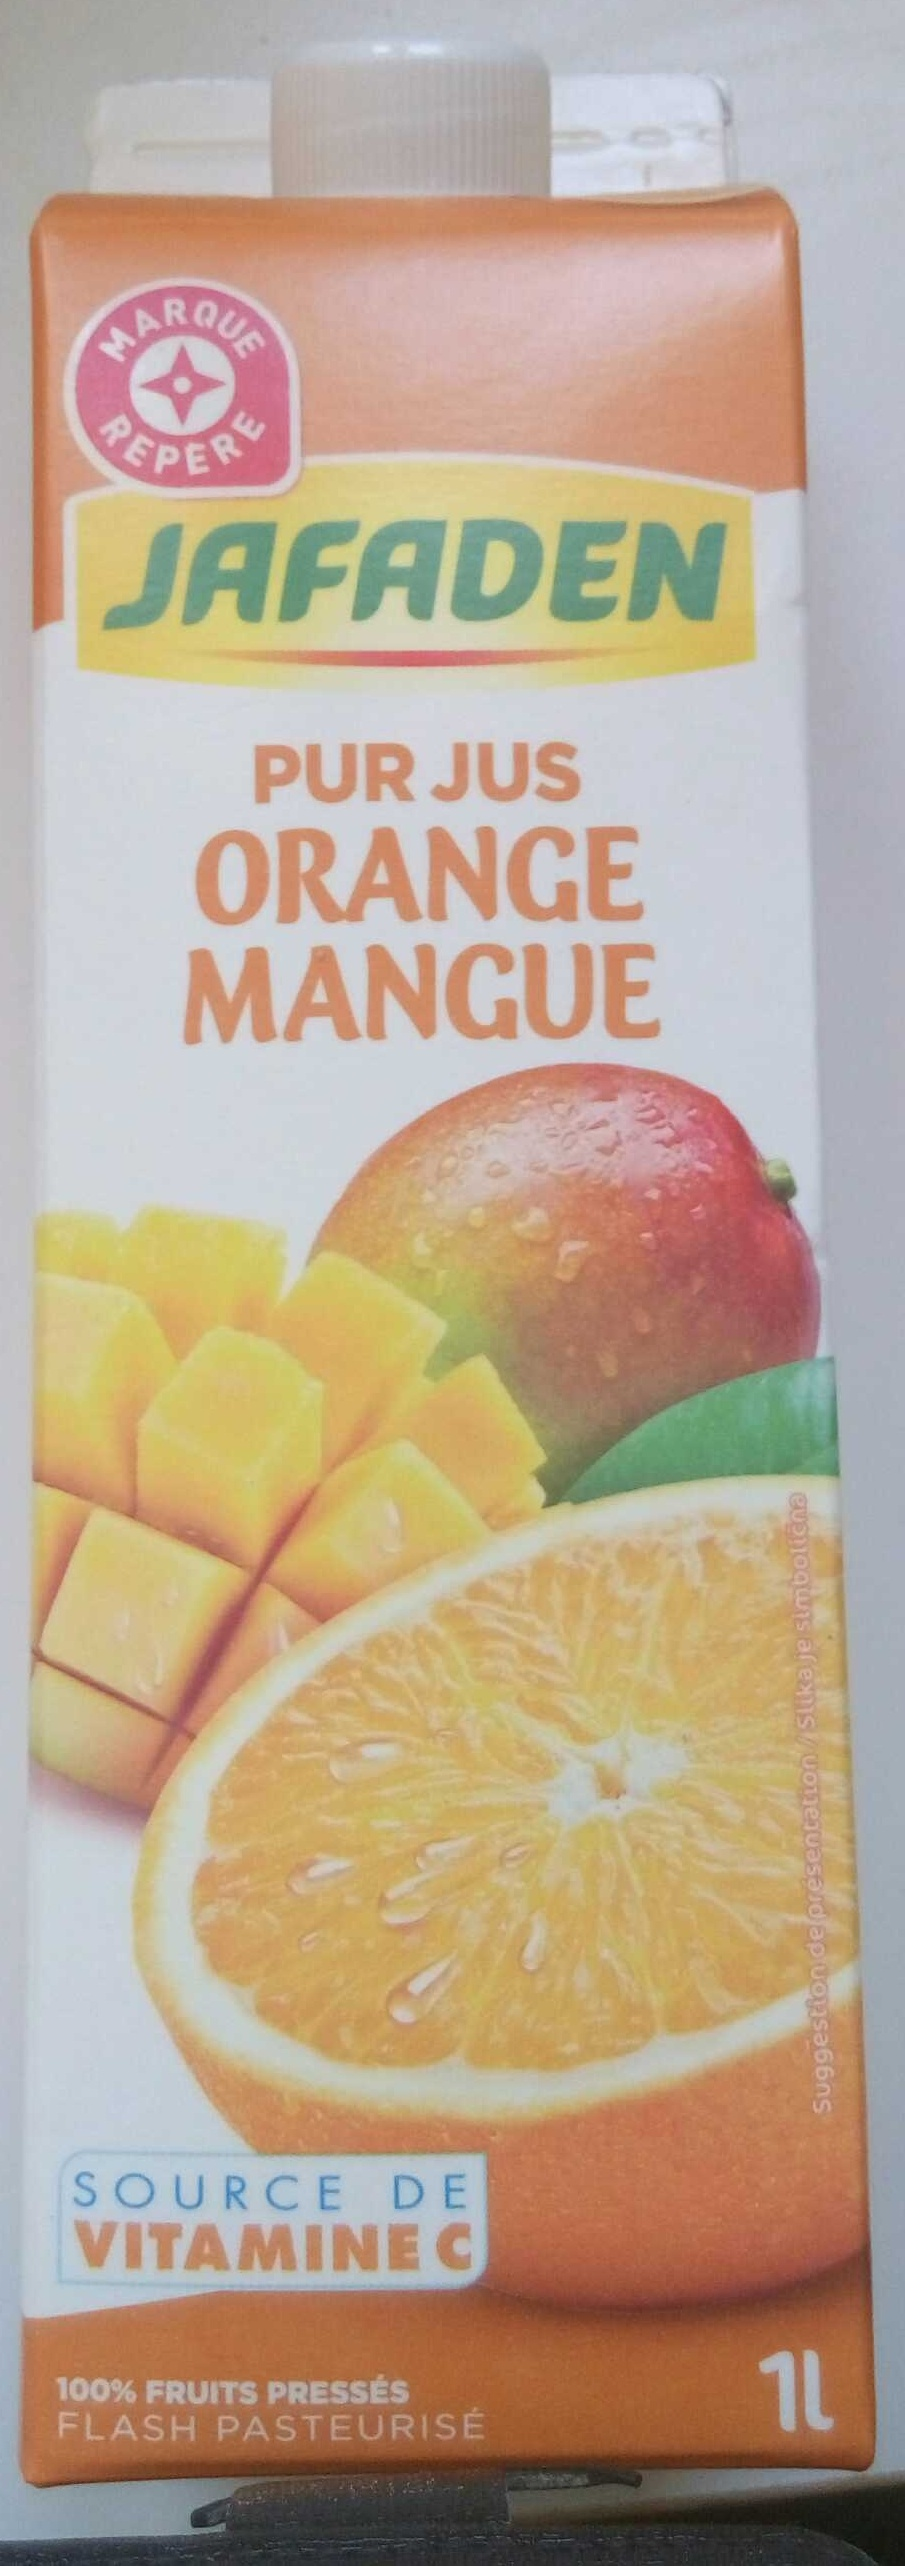 Pur jus Orange Mangue - Product - fr